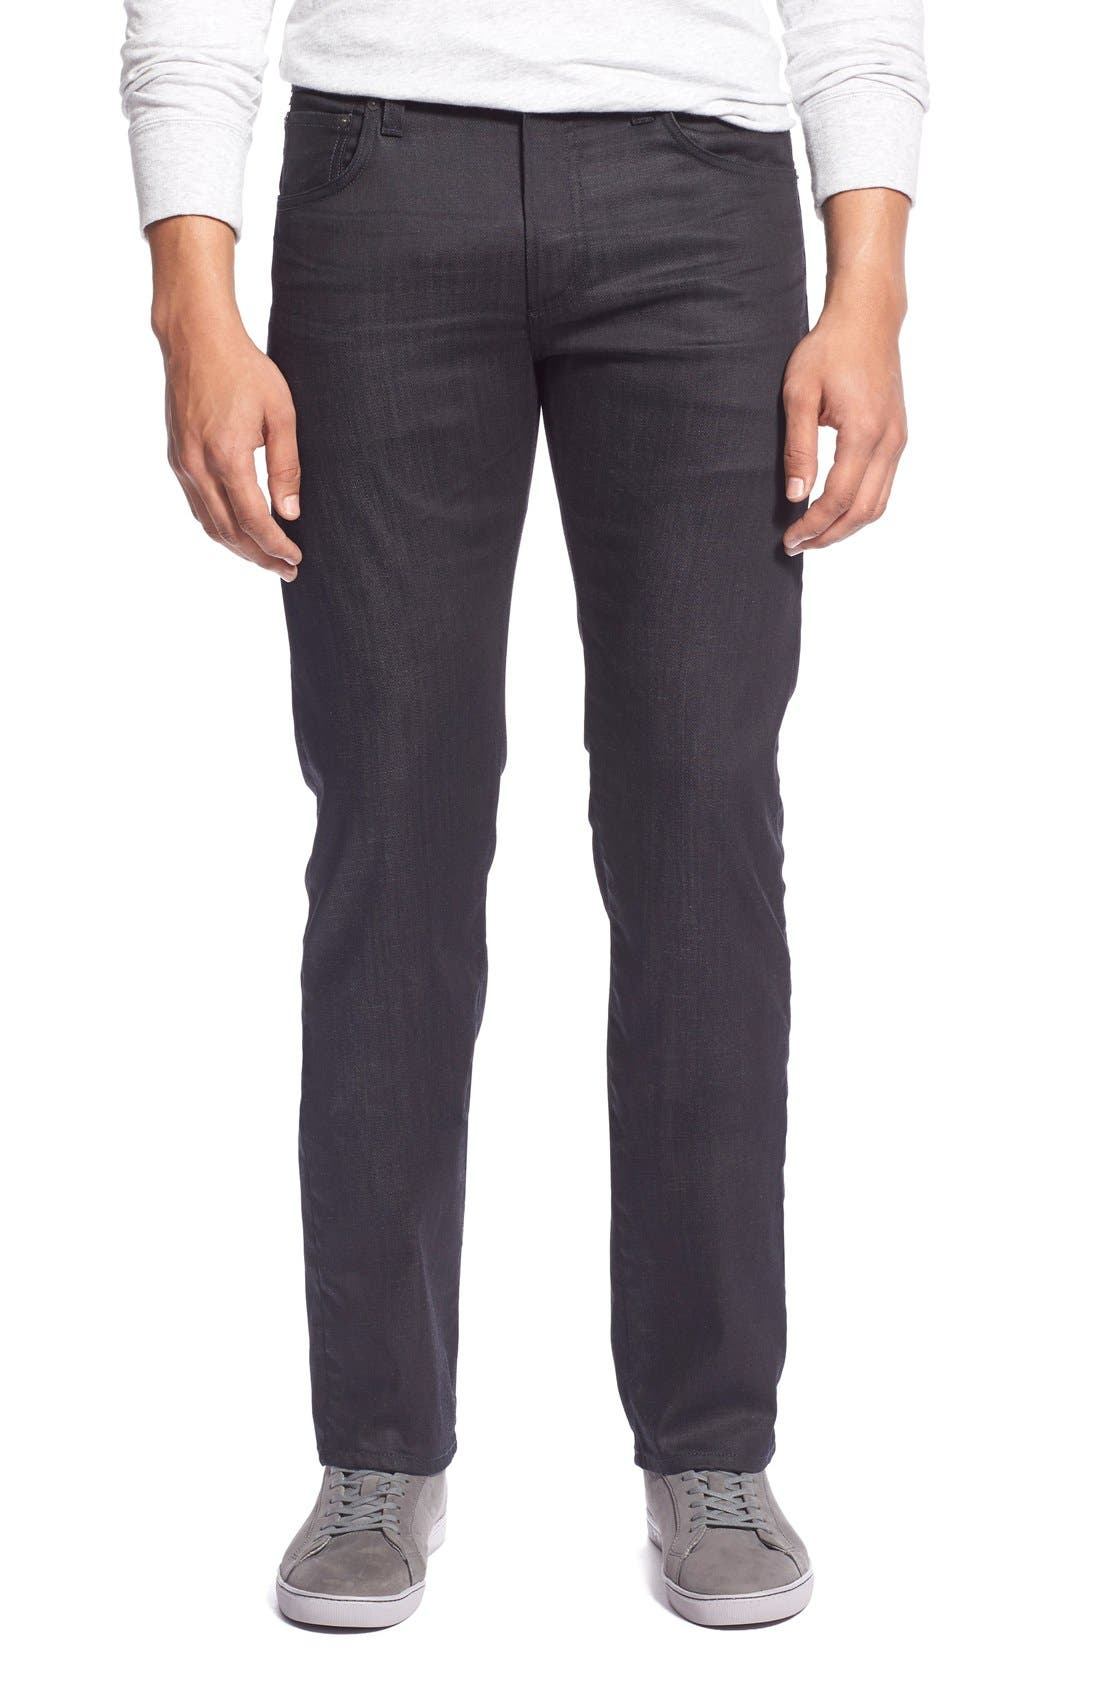 Alternate Image 1 Selected - Citizens of Humanity 'Core' Slim Fit Jeans (Prestige)